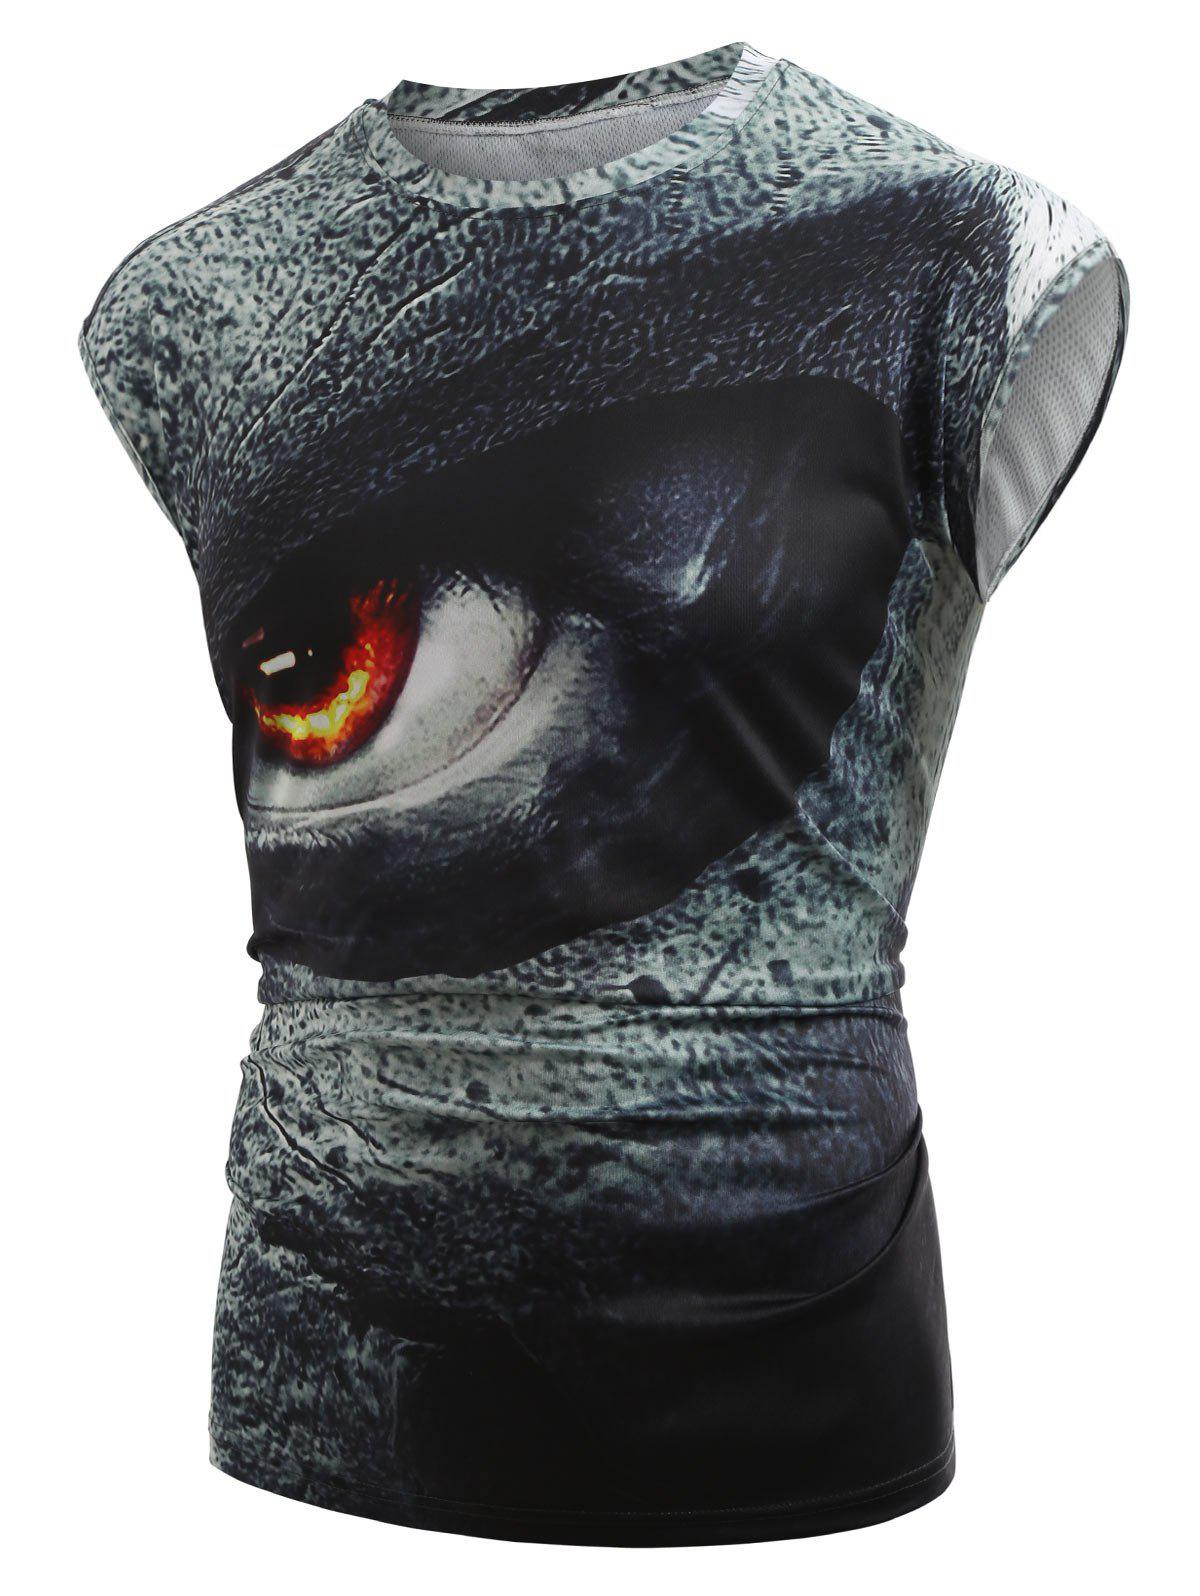 Casual 3D Angry Eyes Print Tank Top - GRAY S